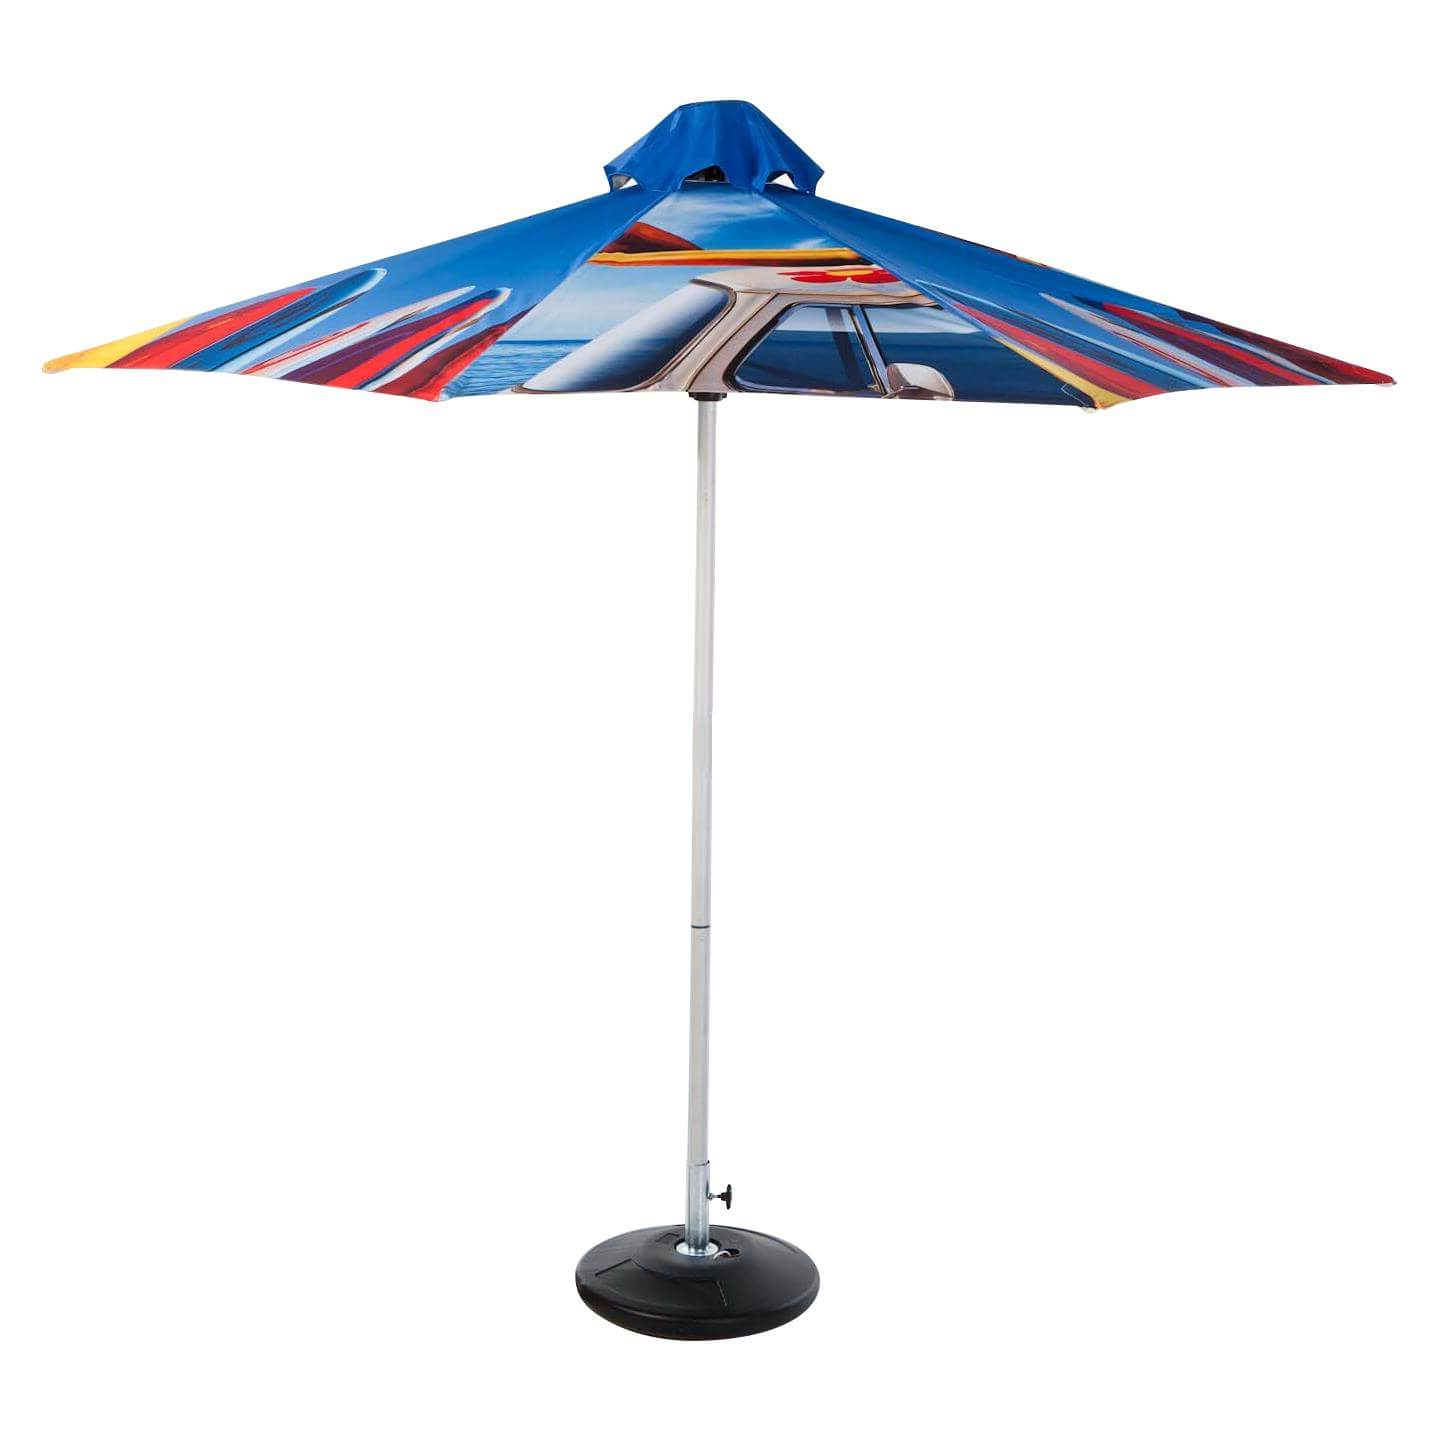 Most Recently Released Market Umbrellas Pertaining To Market Umbrellas – Zodiac Event Displays (Gallery 8 of 20)